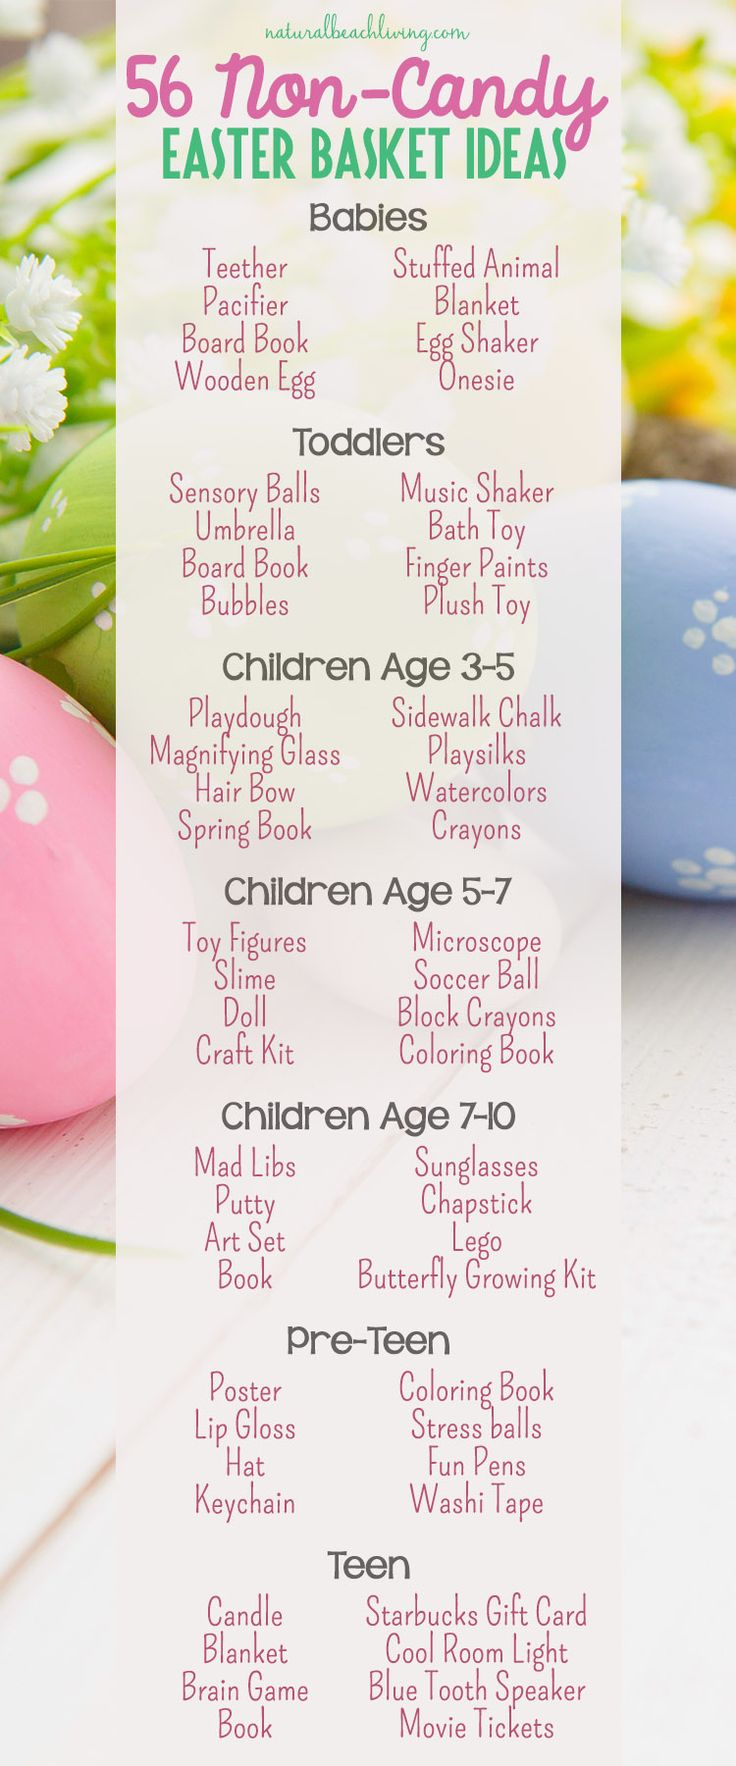 The 25 best easter baskets ideas on pinterest easter ideas 56 non candy easter basket ideas for kids negle Image collections